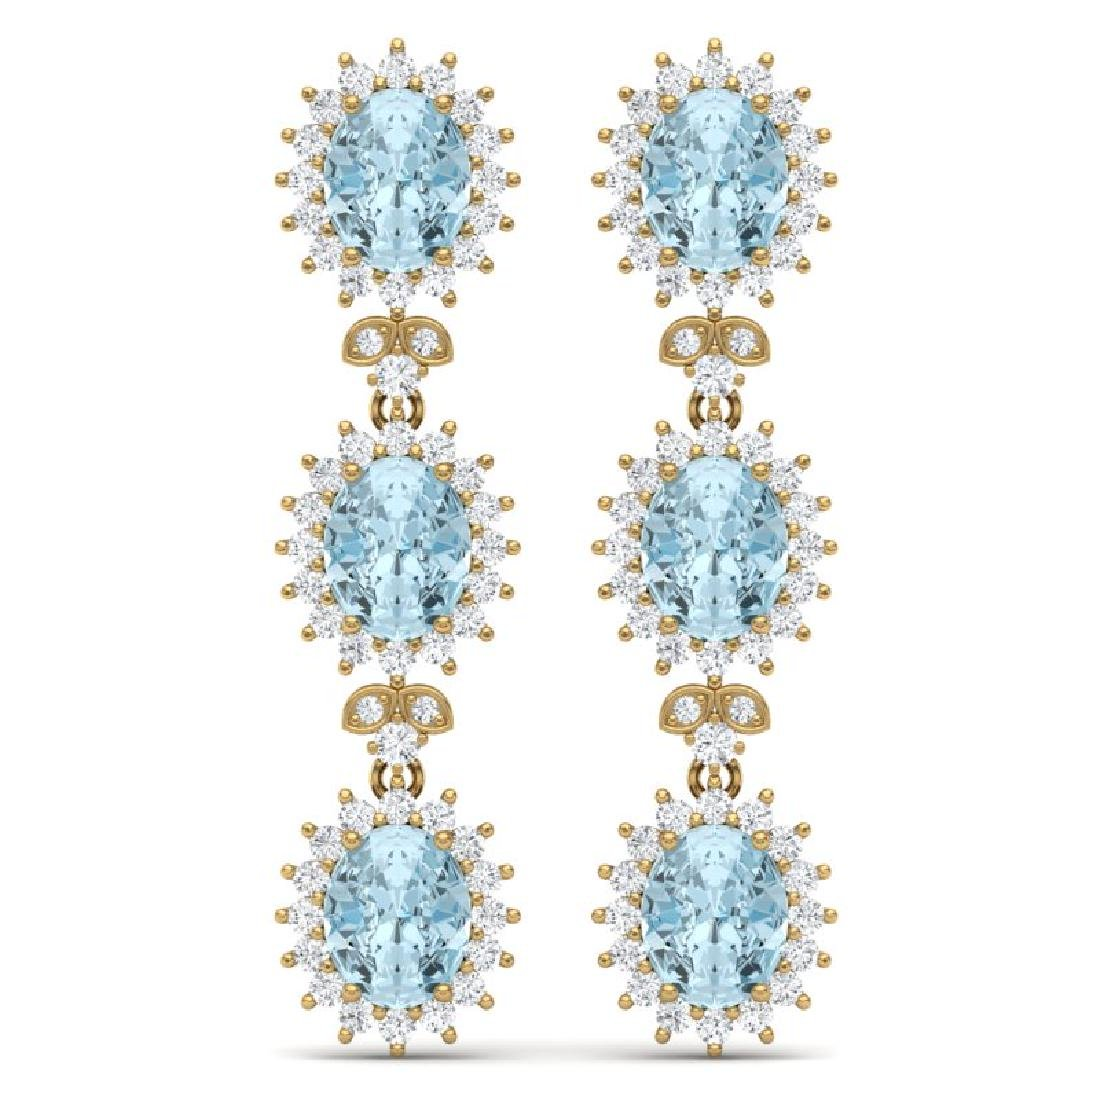 25.06 CTW Royalty Sky Topaz & VS Diamond Earrings 18K